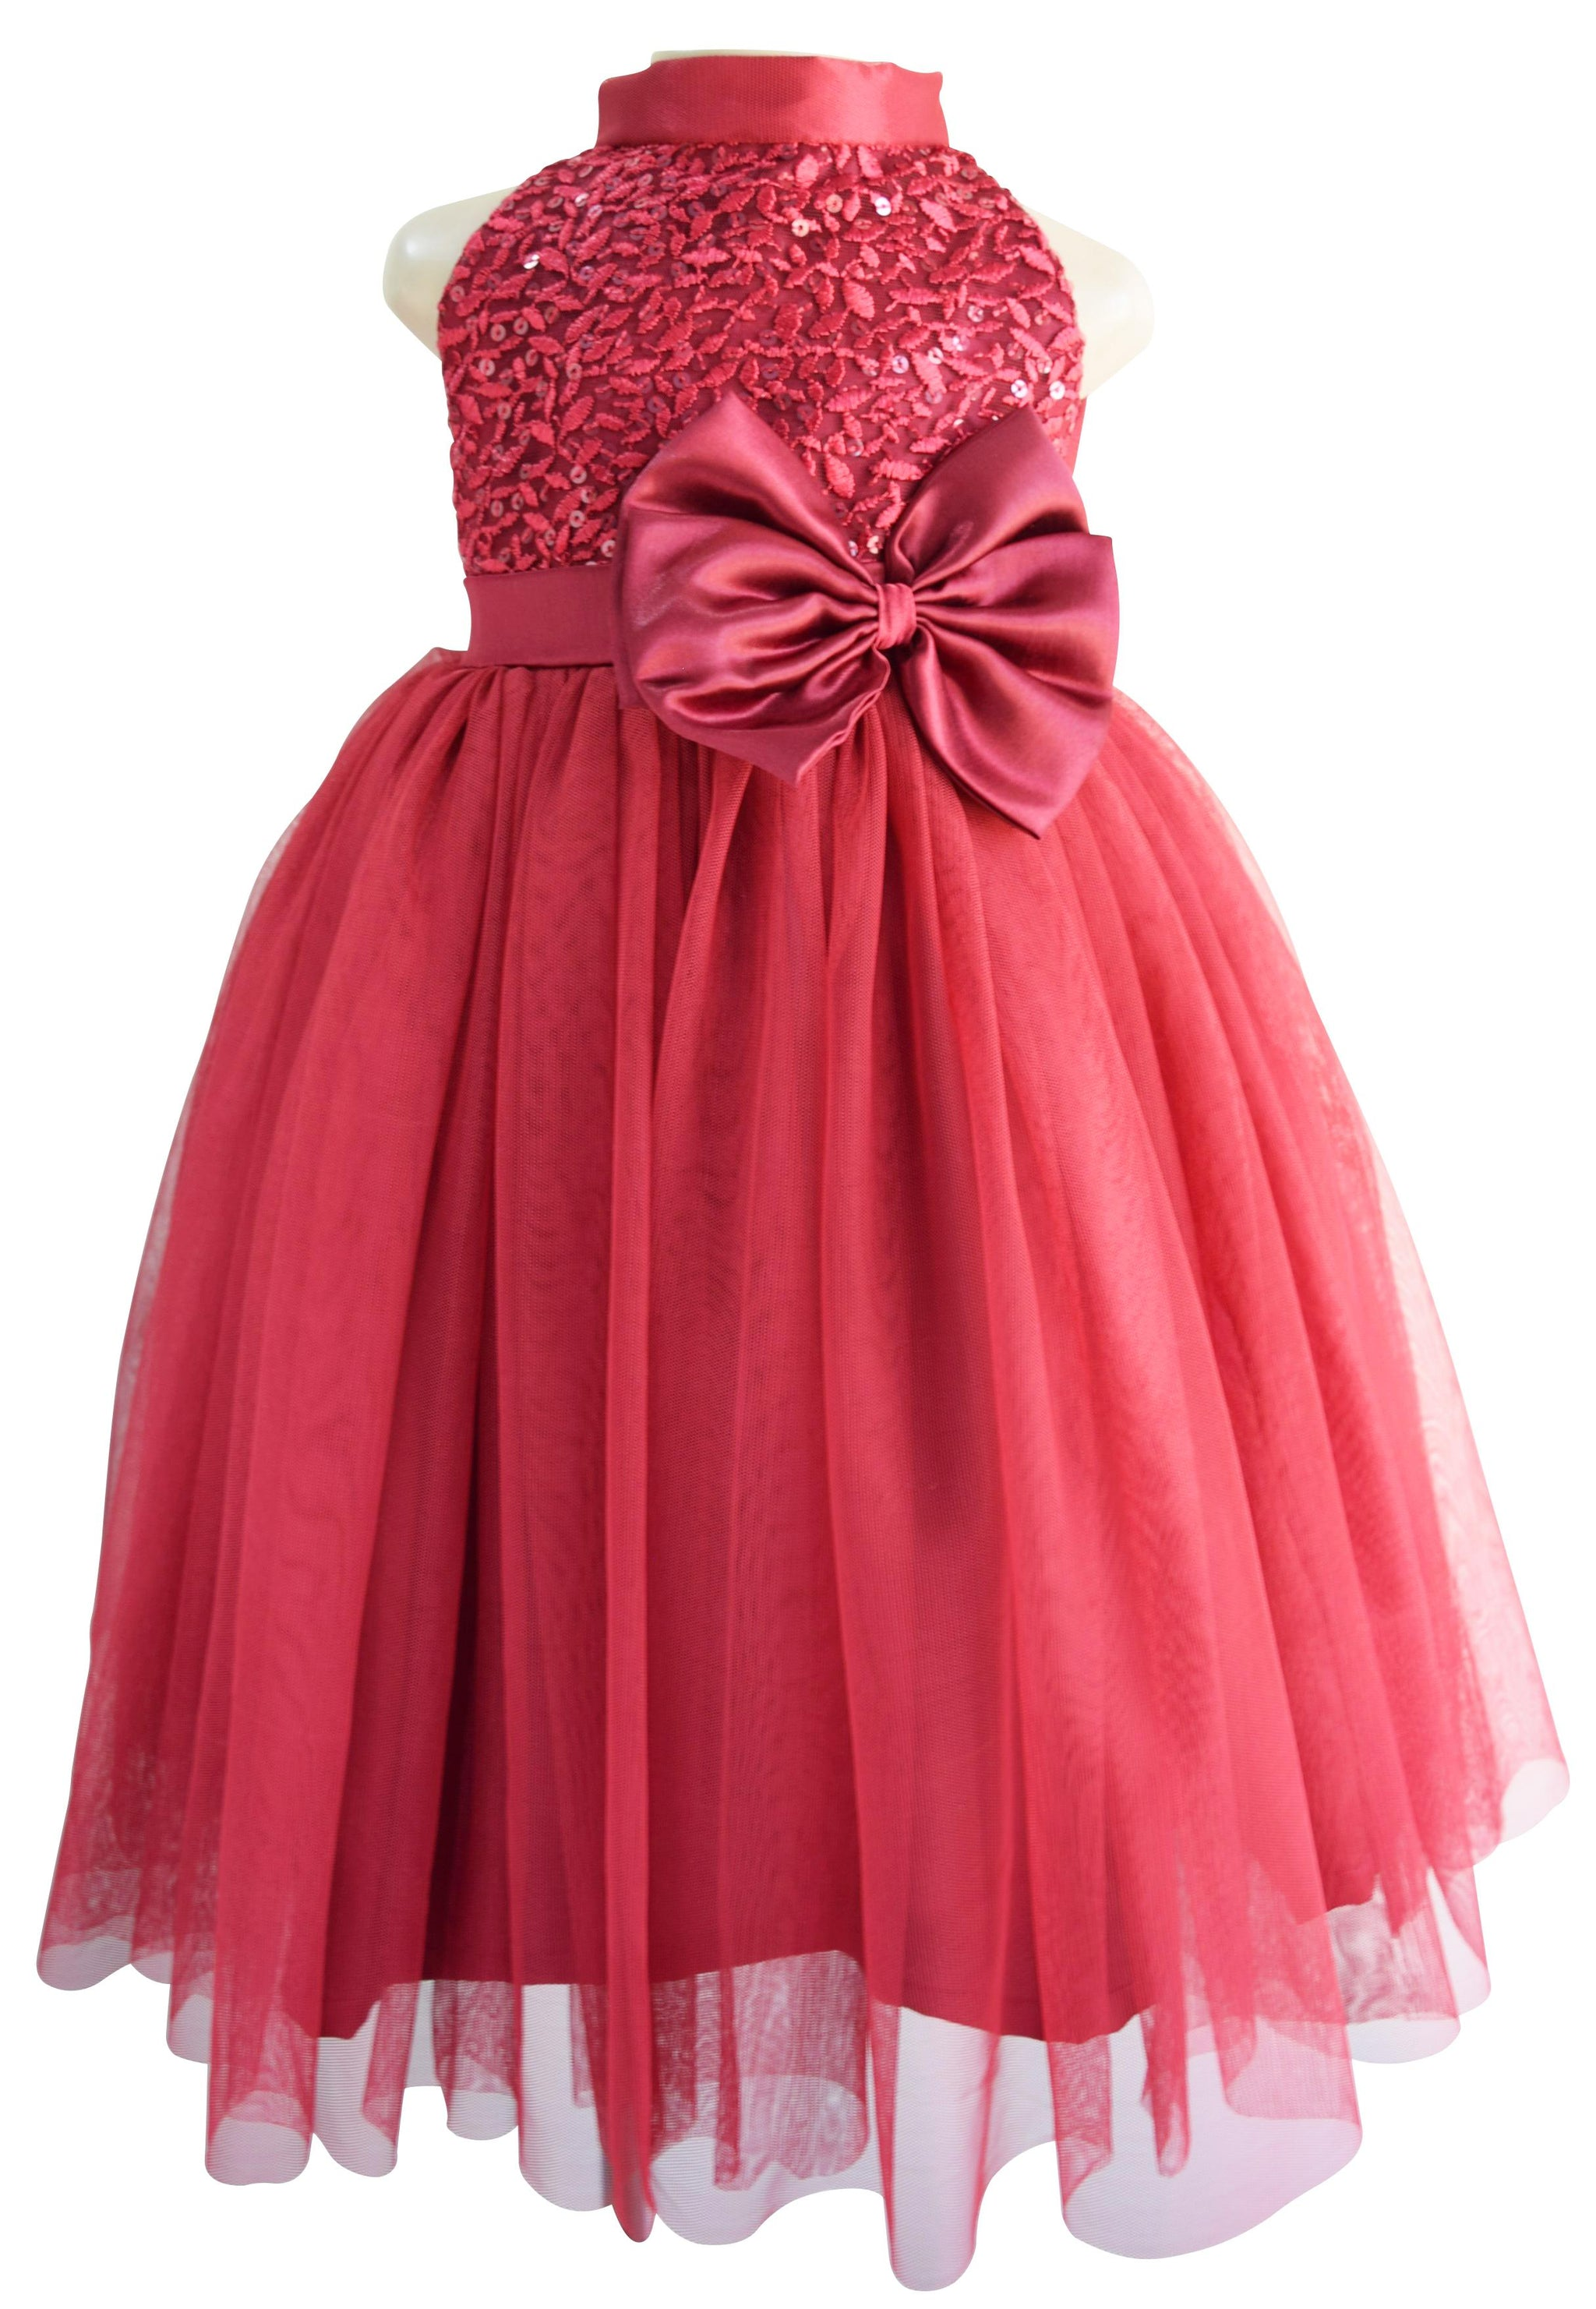 993a159db Kids Gowns | Kid Dress | 1st Brithday Dress - faye